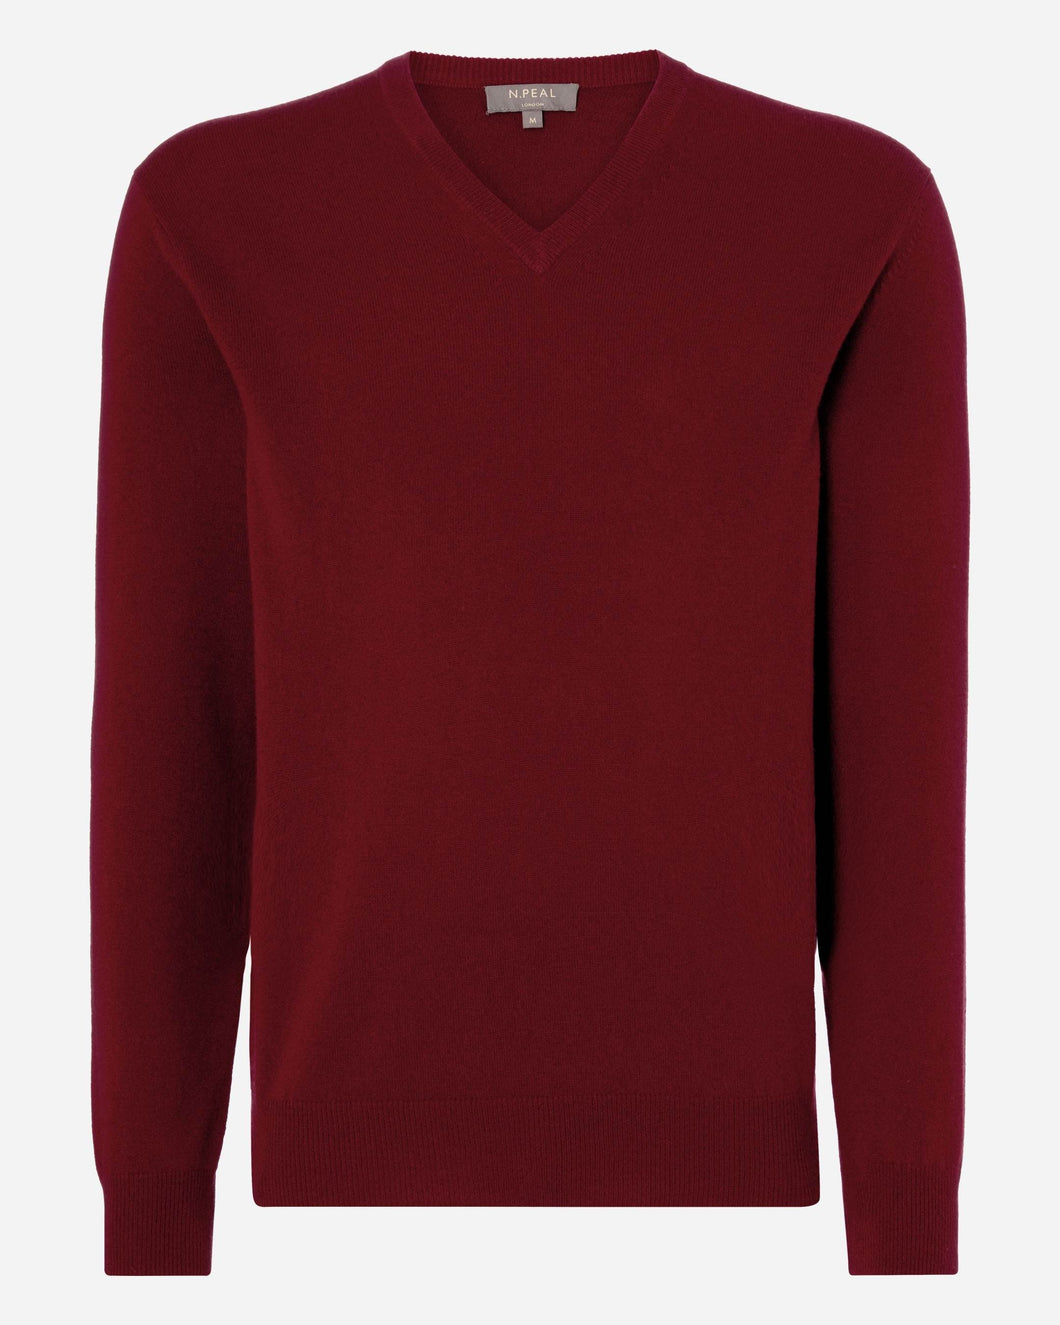 The Burlington V Neck Cashmere Sweater Enriched Red